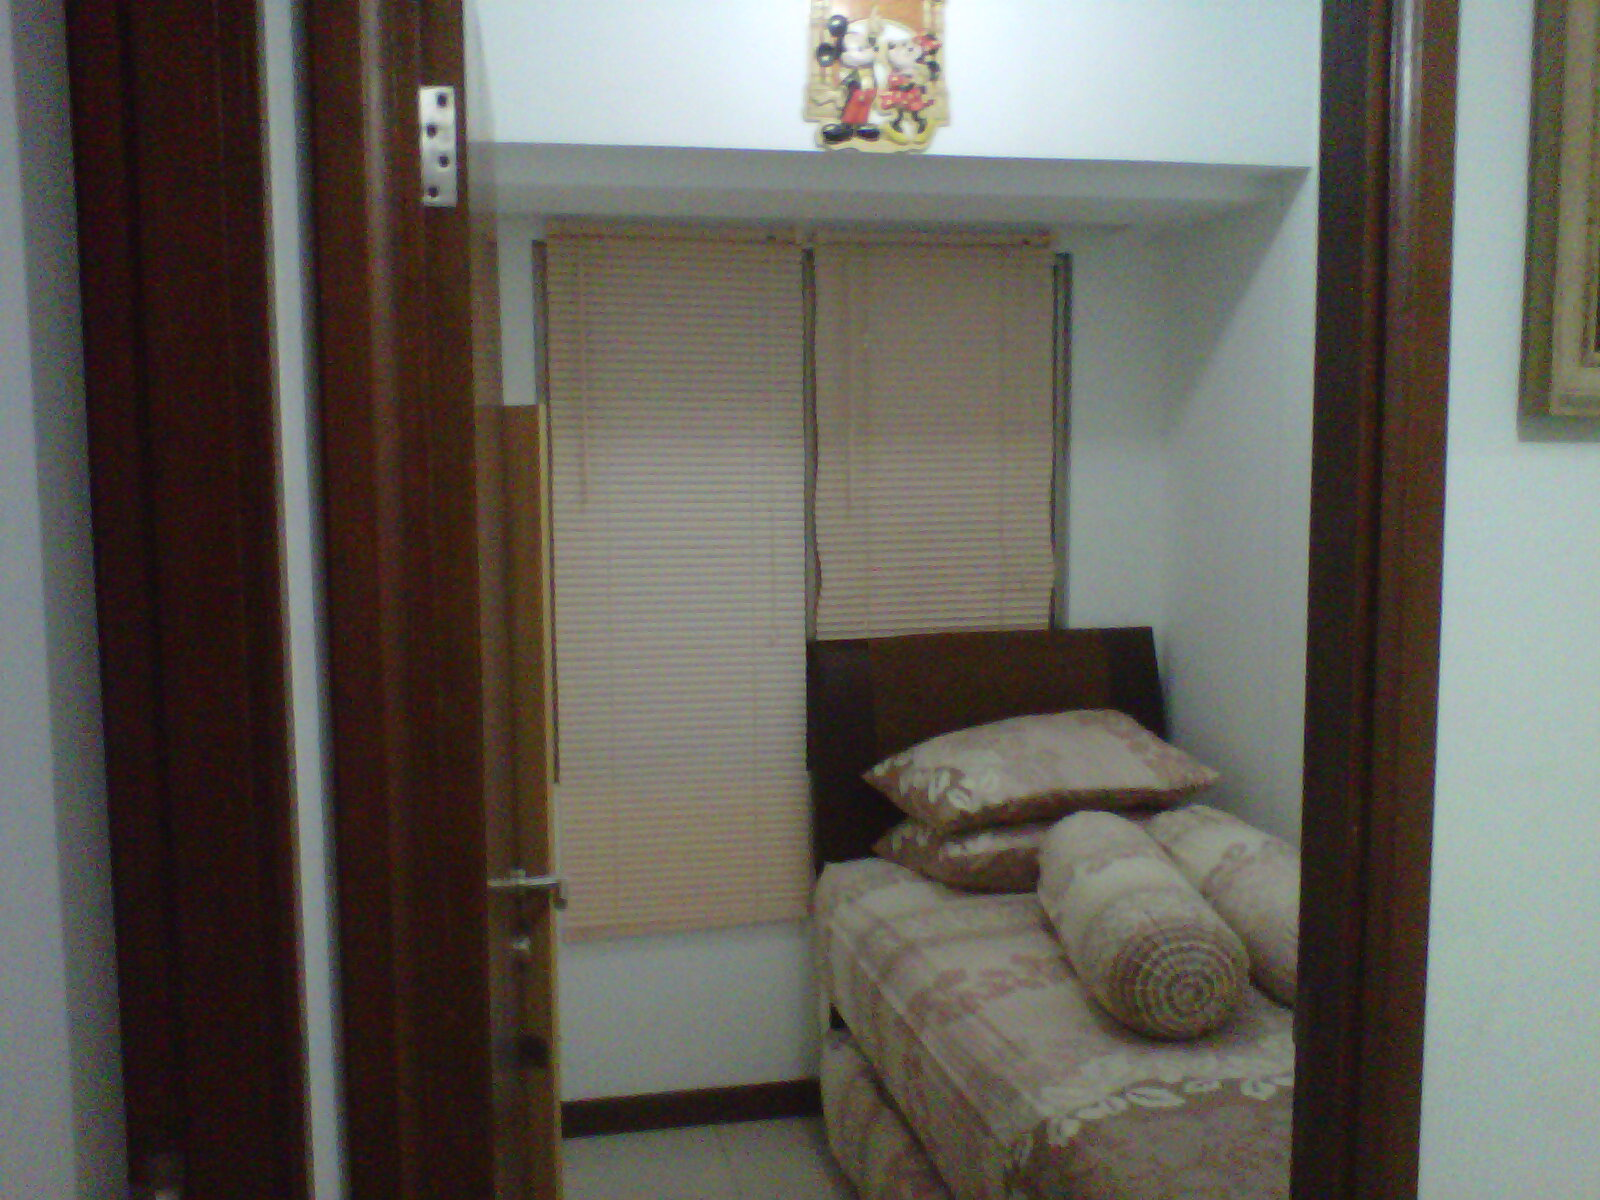 Apartments for rent near me - 2 bedroom apartment for rent near me ...